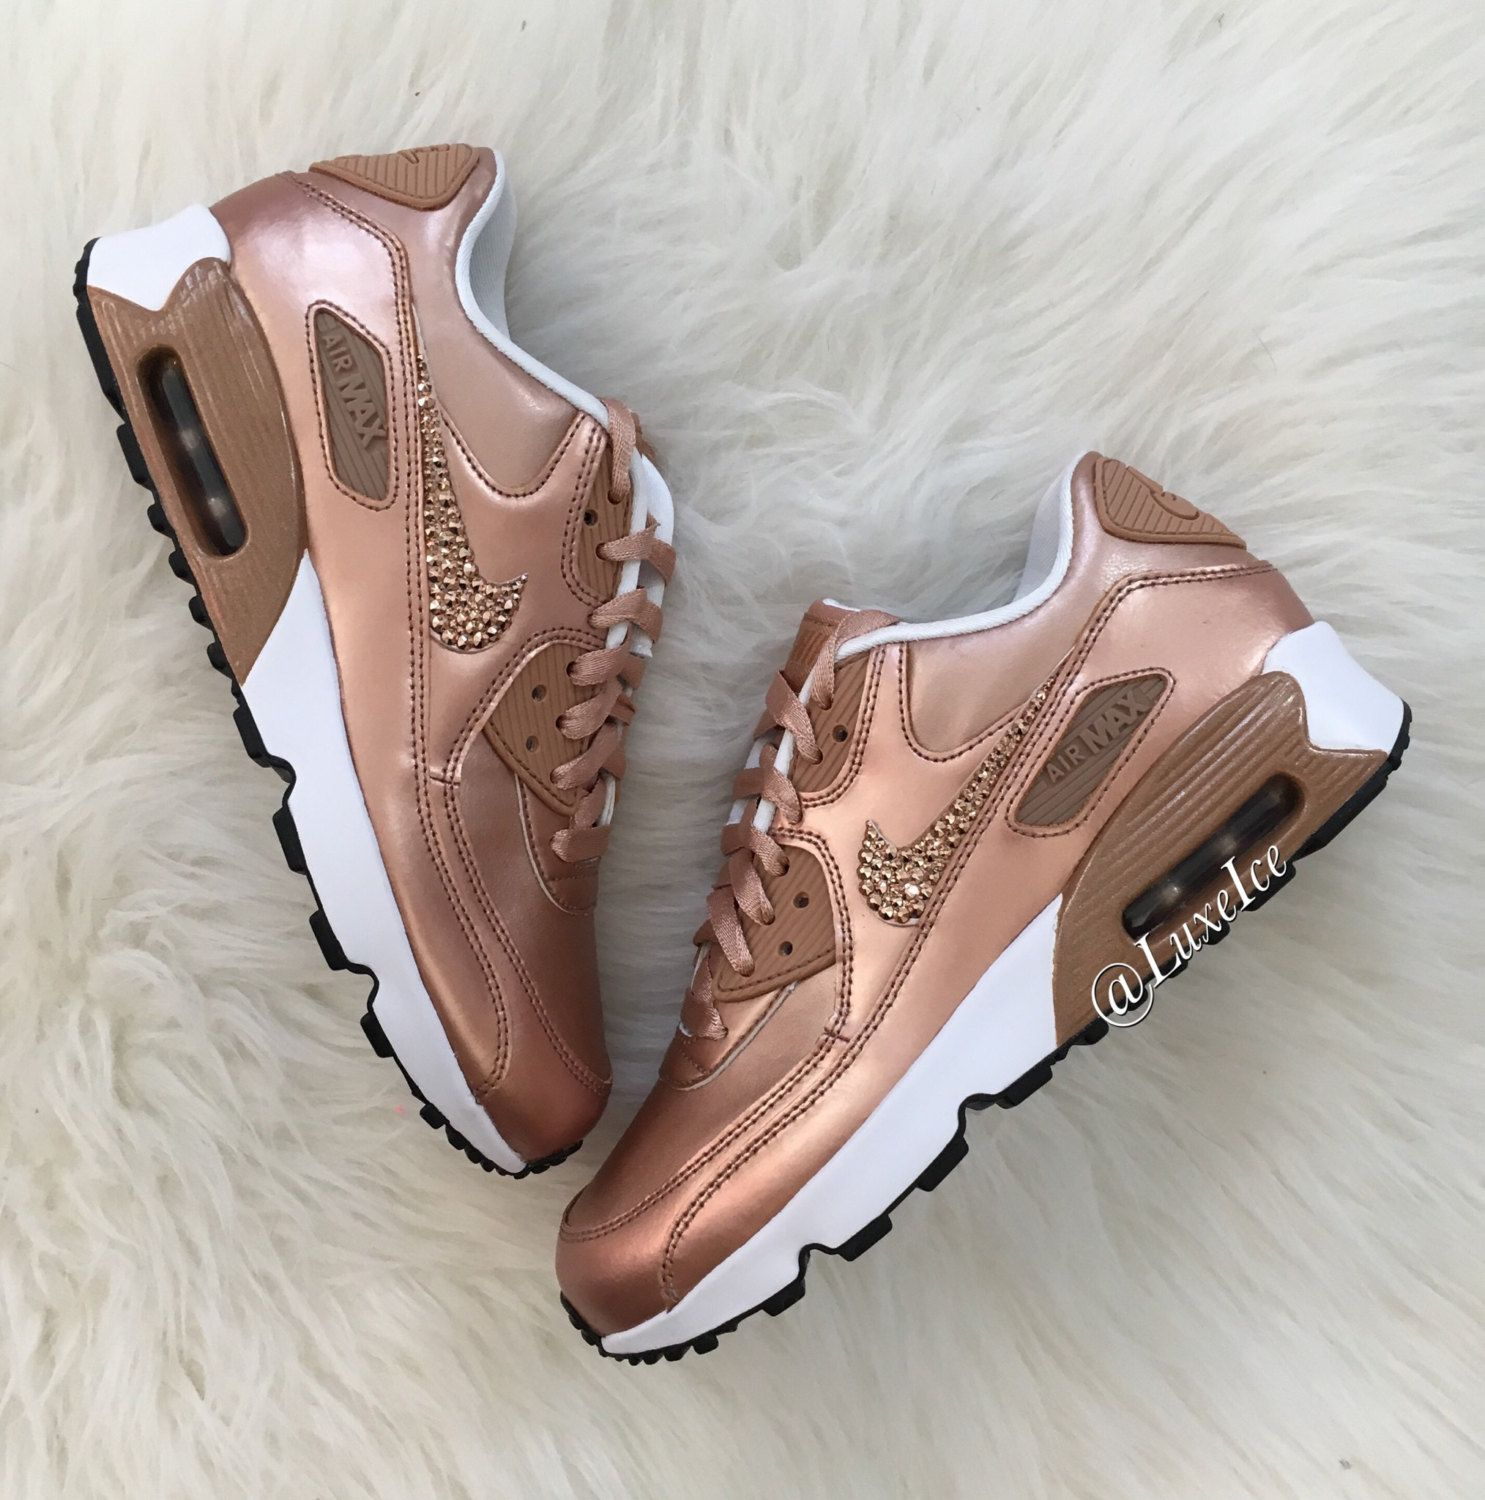 info for f6755 2993e Nike Air Max 90 SE Leather with SWAROVSKI® Xirius Rose-Cut Crystals. Color  Metallic  Red Bronze Metallic Red Bronze FIT  True to size This style is made in ...